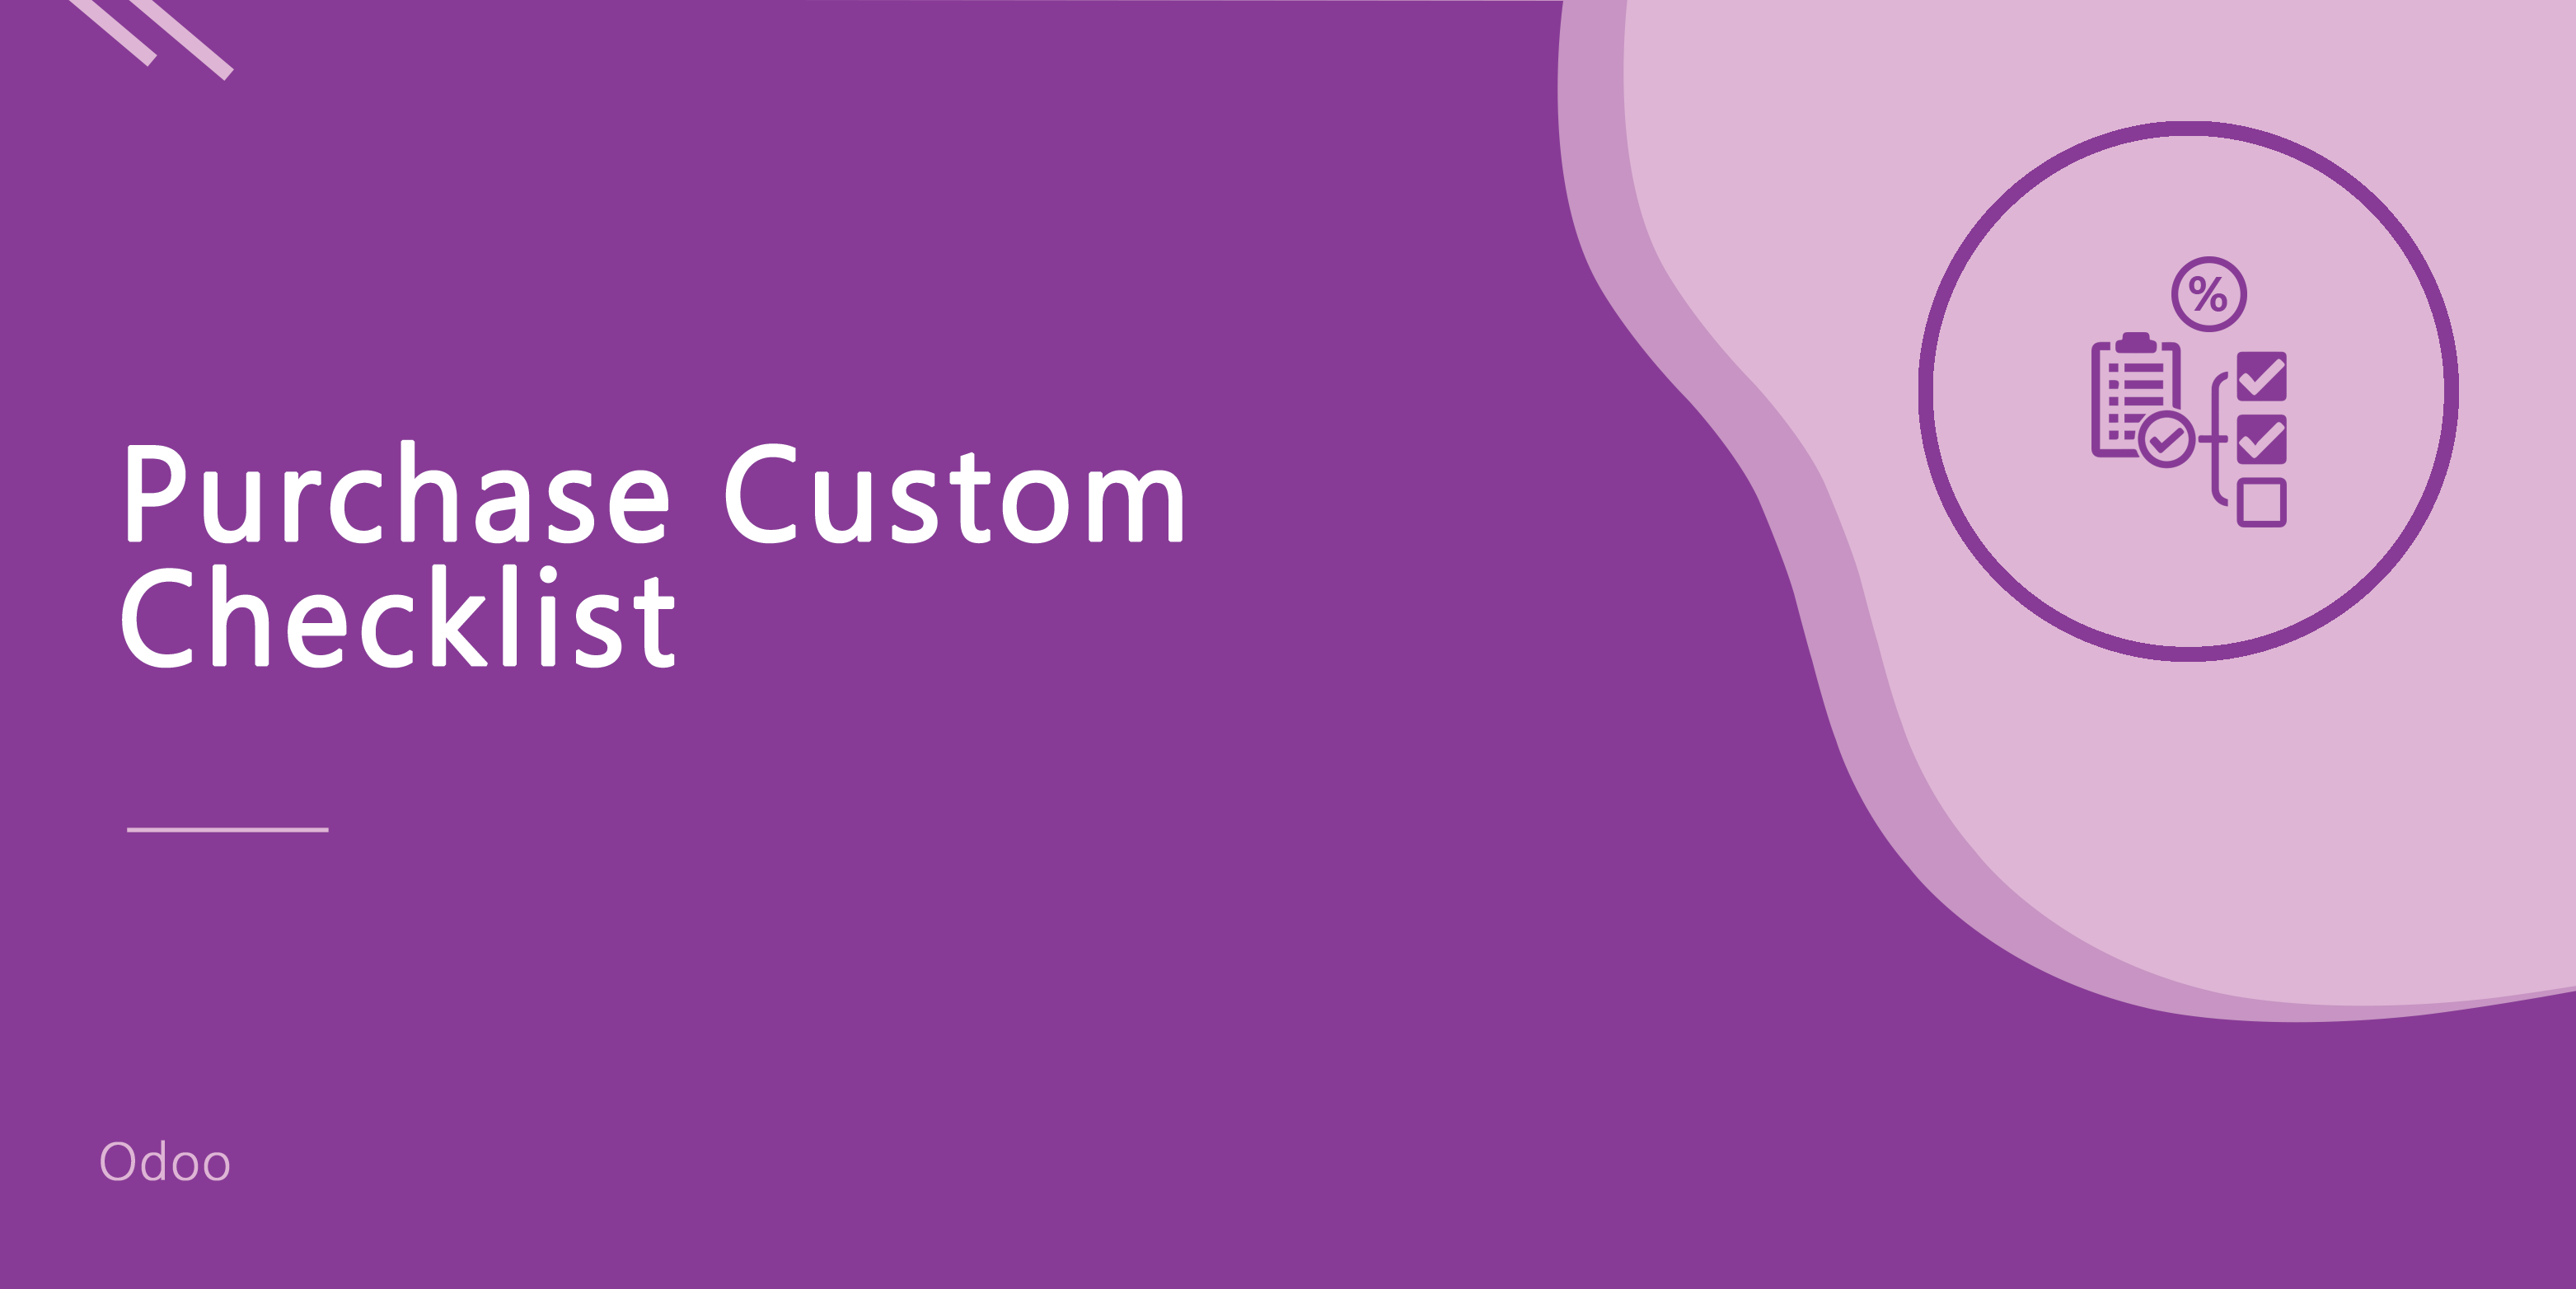 Purchase Order Custom Checklist